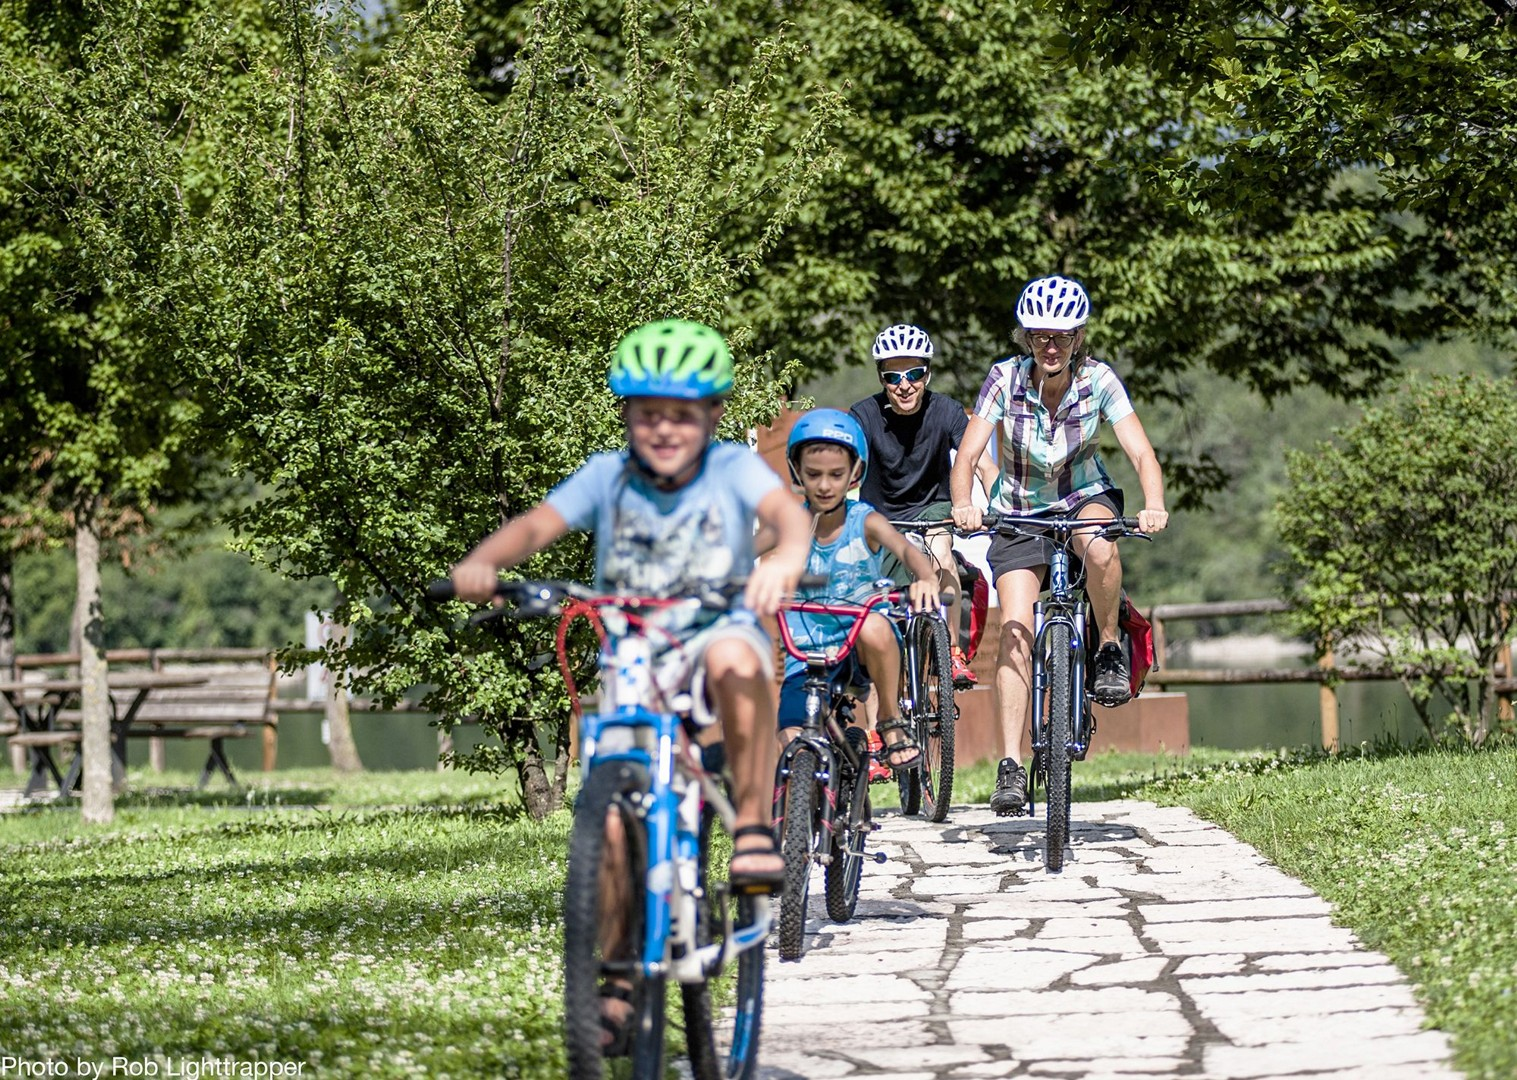 self-guided-family-cycling-holiday-italy.jpg - Italy - Lake Garda Explorer - Self-Guided Family Cycling Holiday - Italia Leisure and Family Cycling